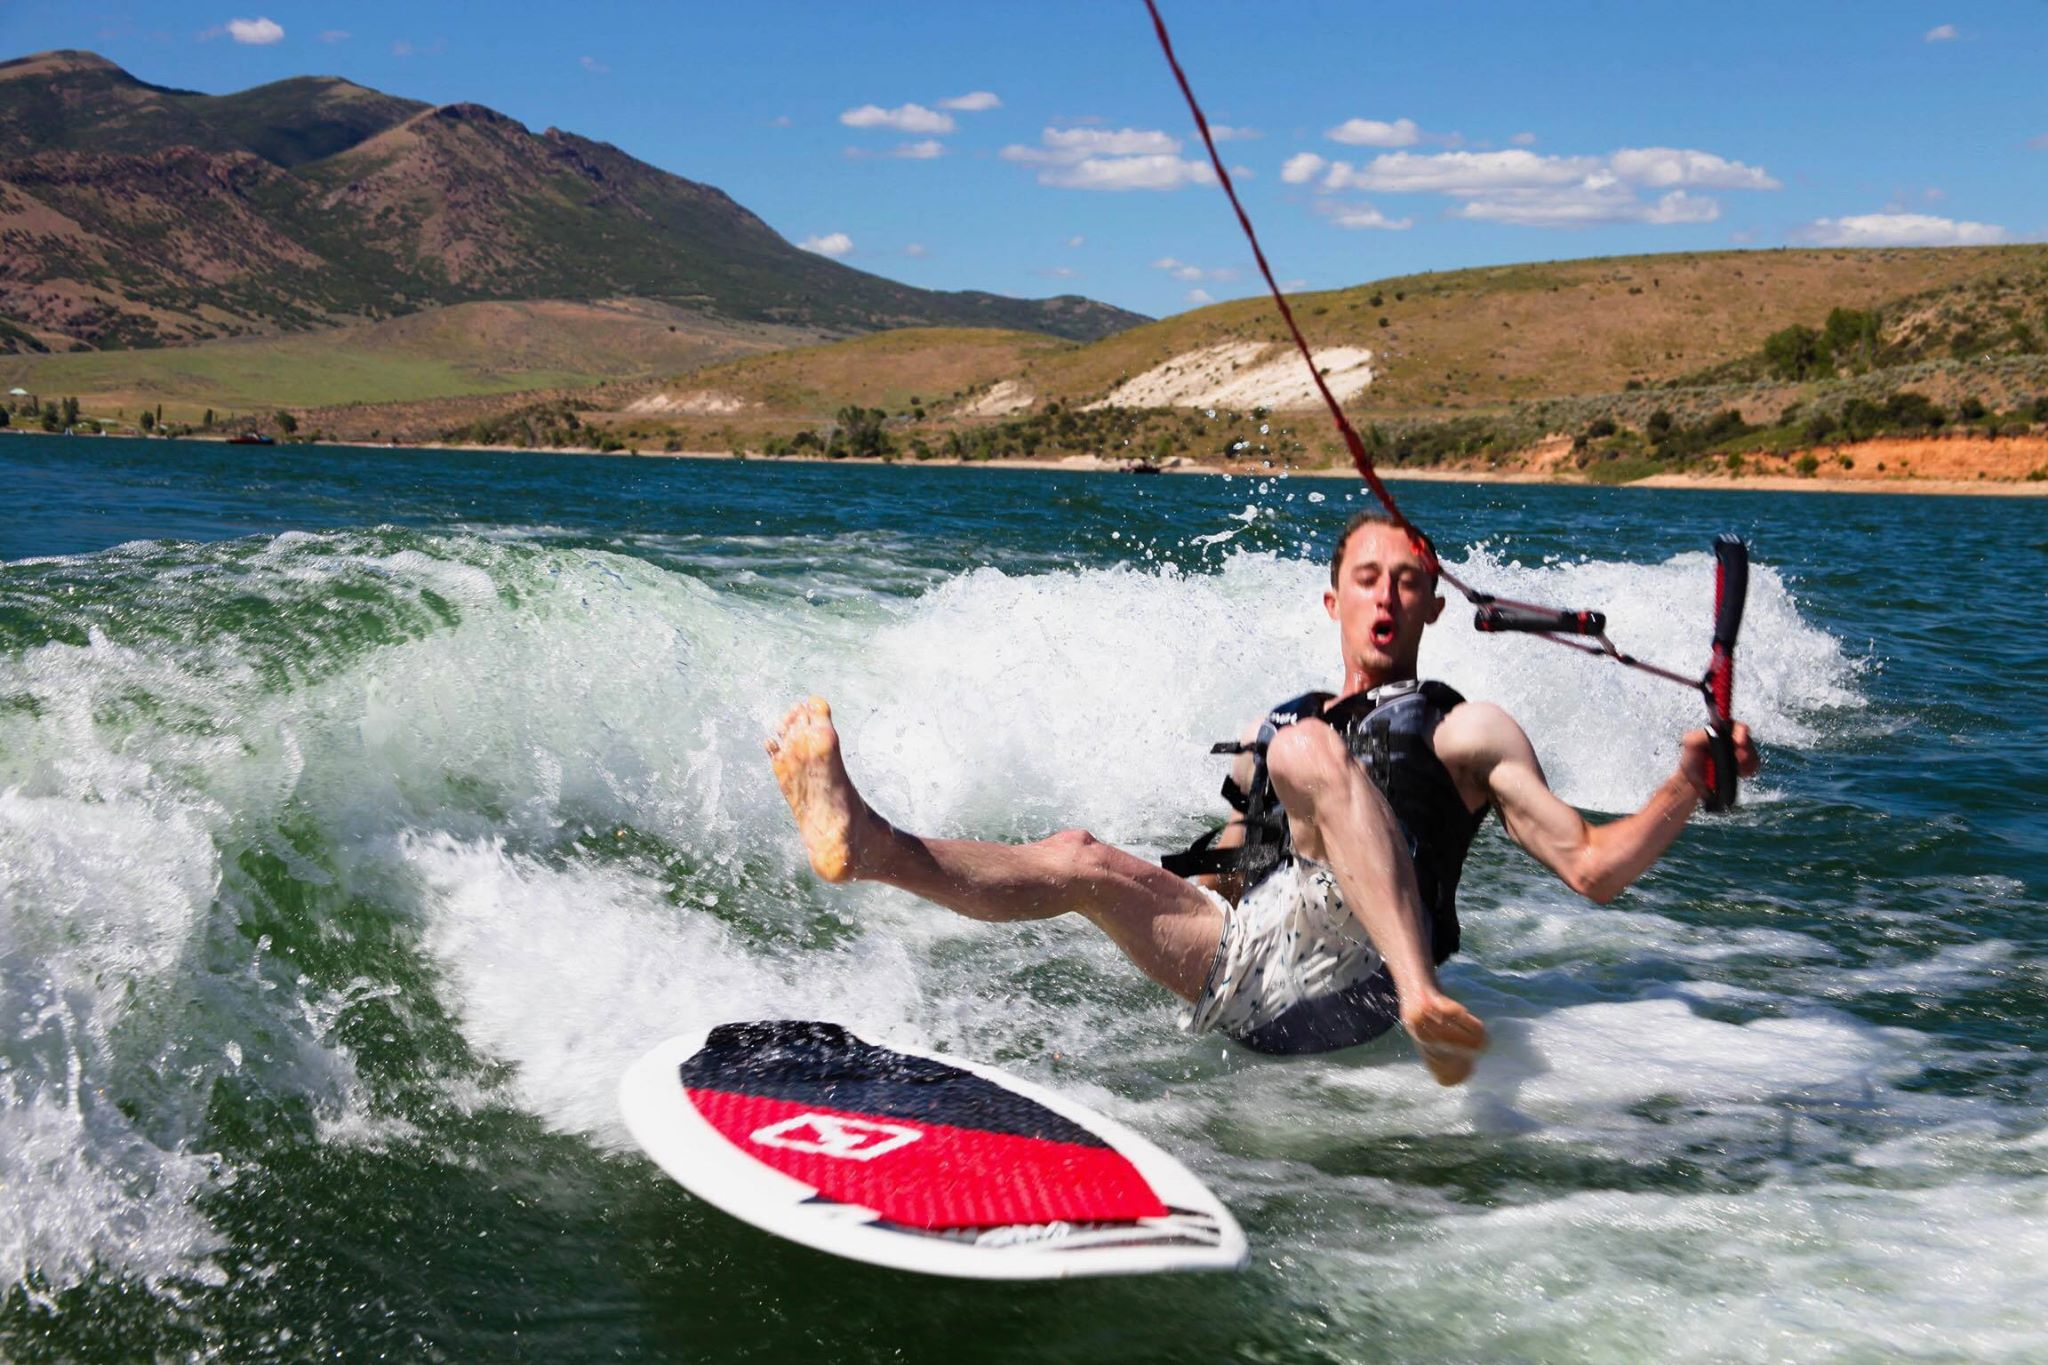 Wipeouts can happen when surfing behind a rented boat